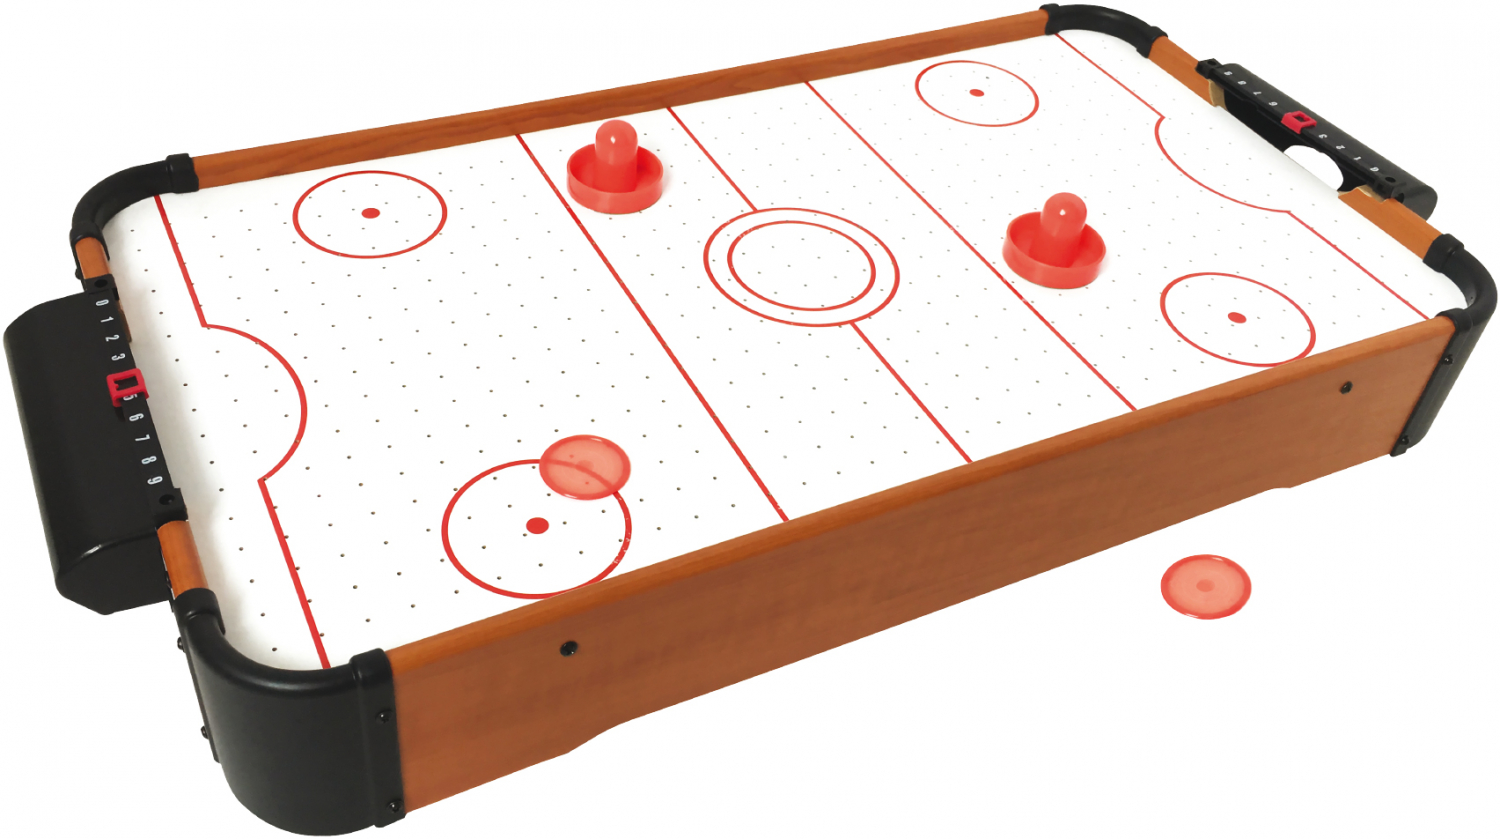 Details about 27 Inch Table Top Air Hockey Compact Portable Fun Game  Playset w/ Slide Scorers